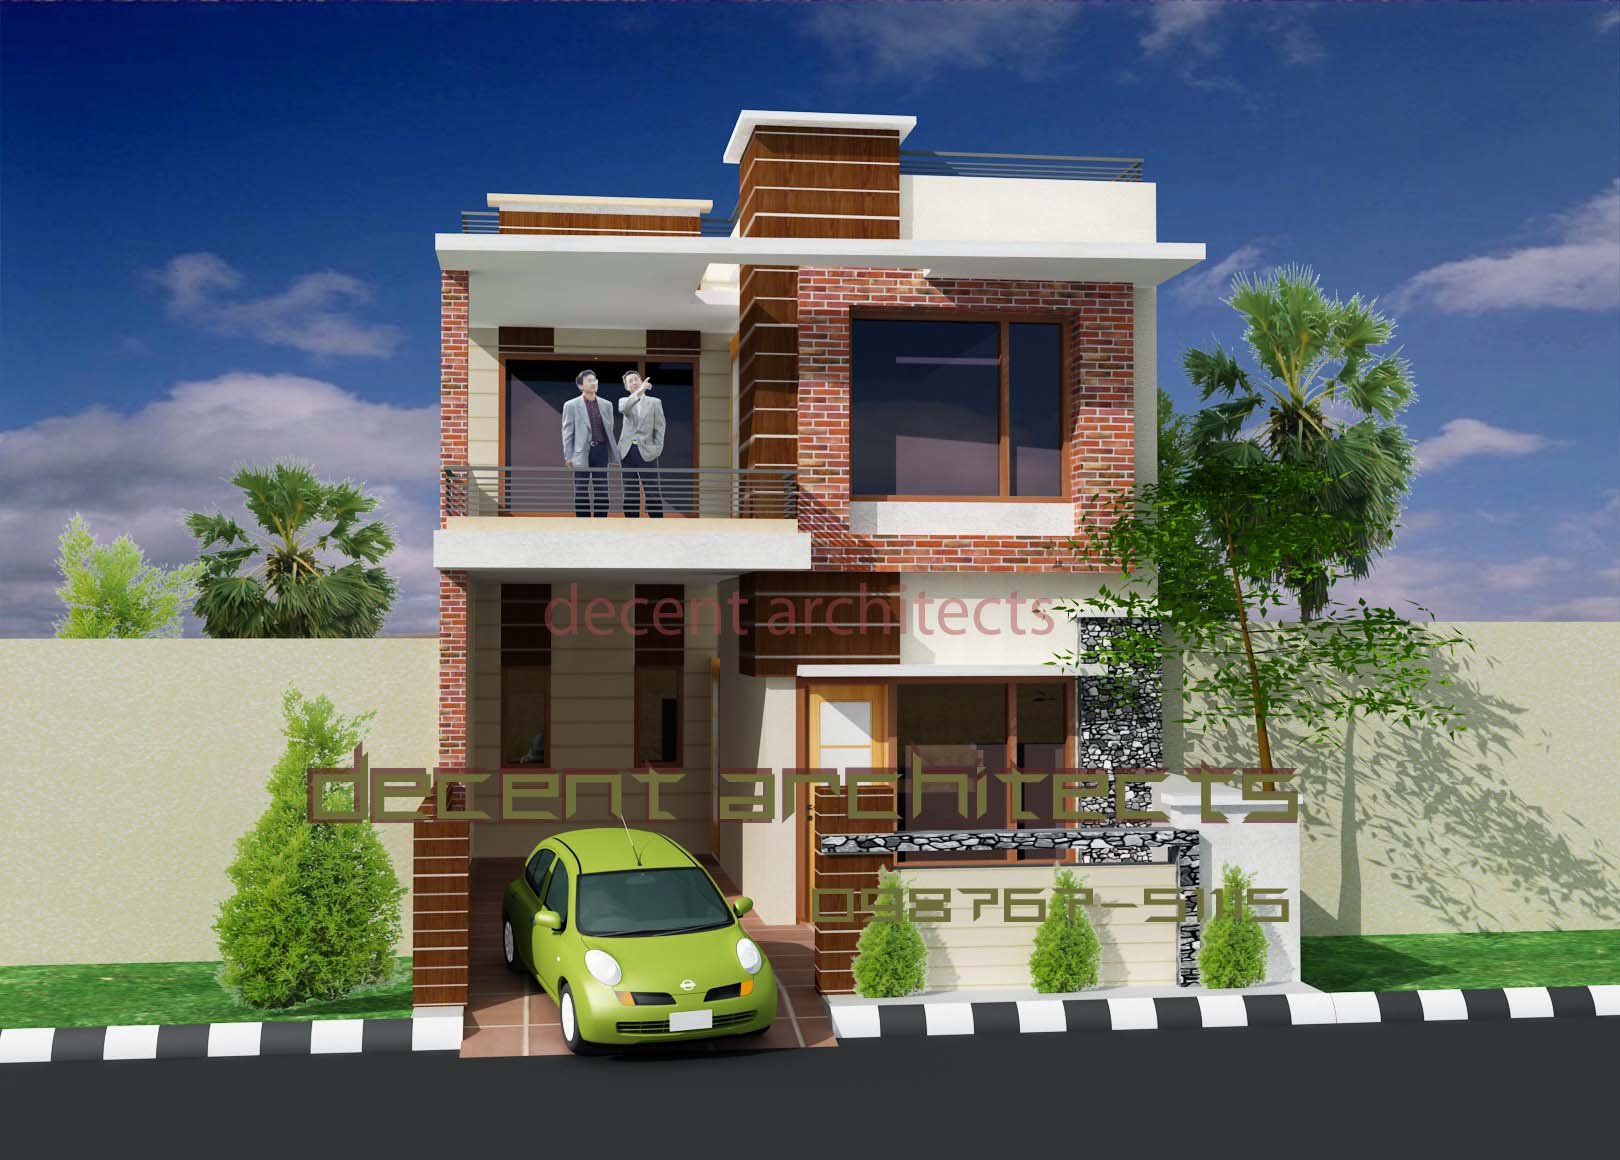 House Designs For Small Spaces Exterior Part 32 Images